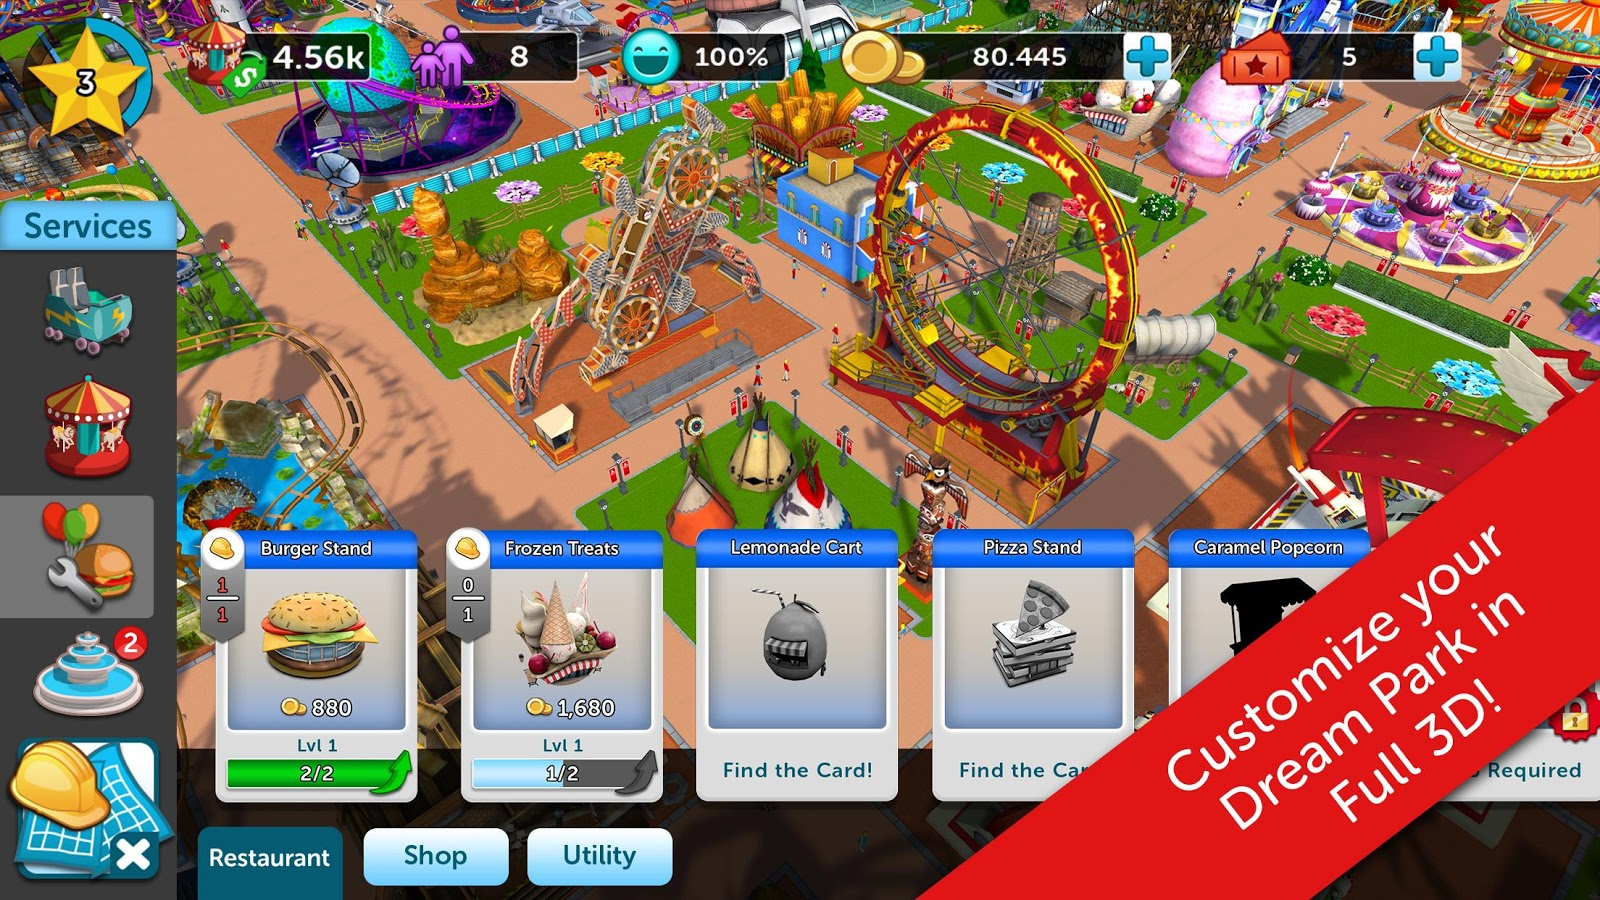 RollerCoaster Tycoon Touch v 1.2.21 Mod Apk with unlimited